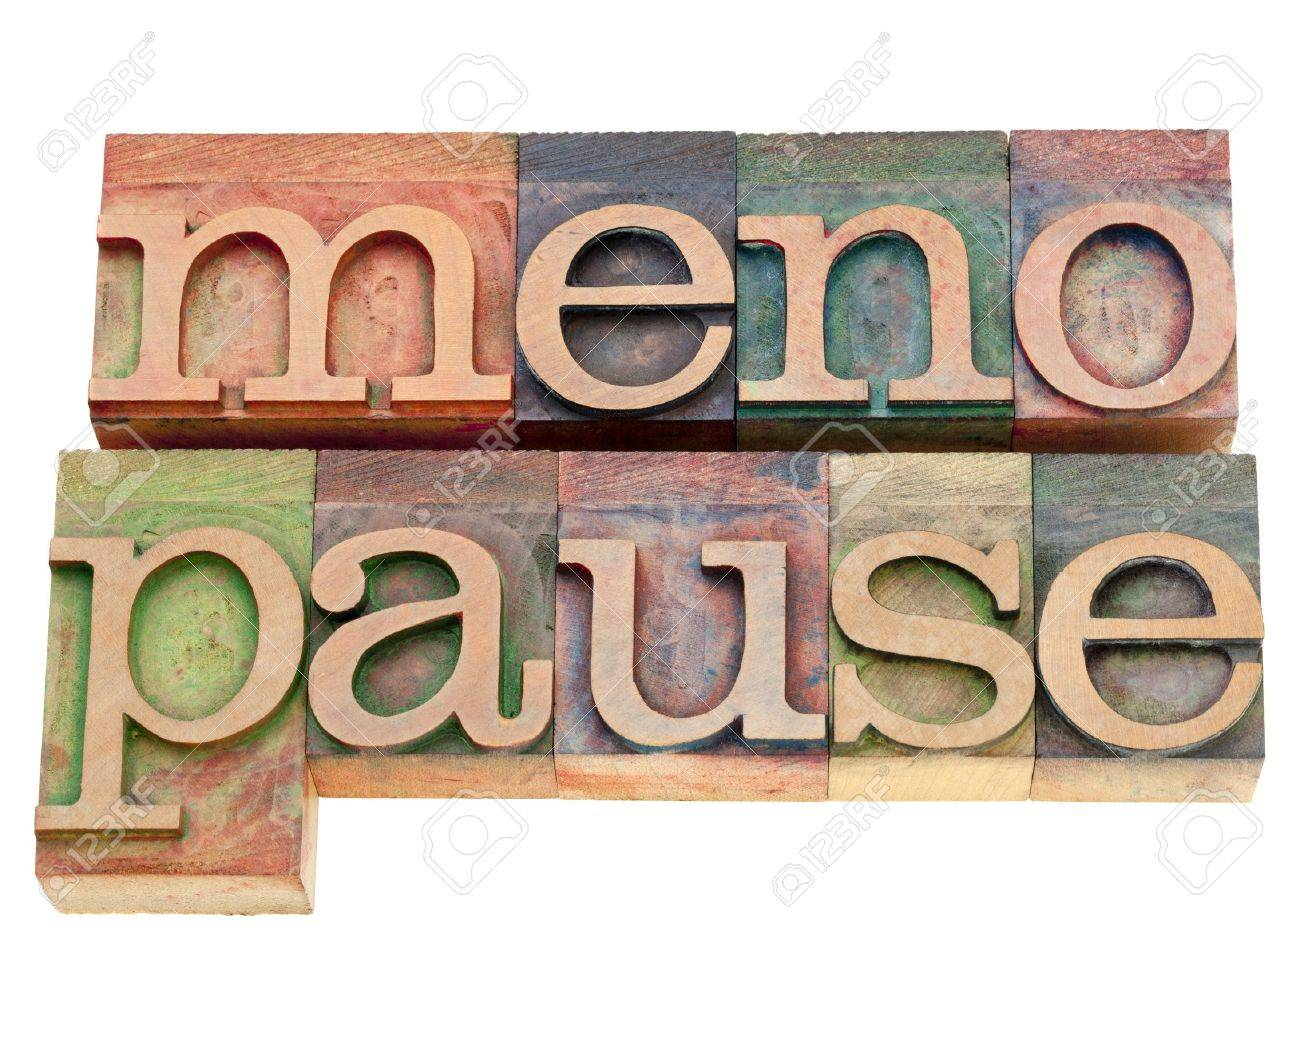 menopause - isolated word in vintage wood letterpress printing blocks stained by color inks Stock Photo - 10493246